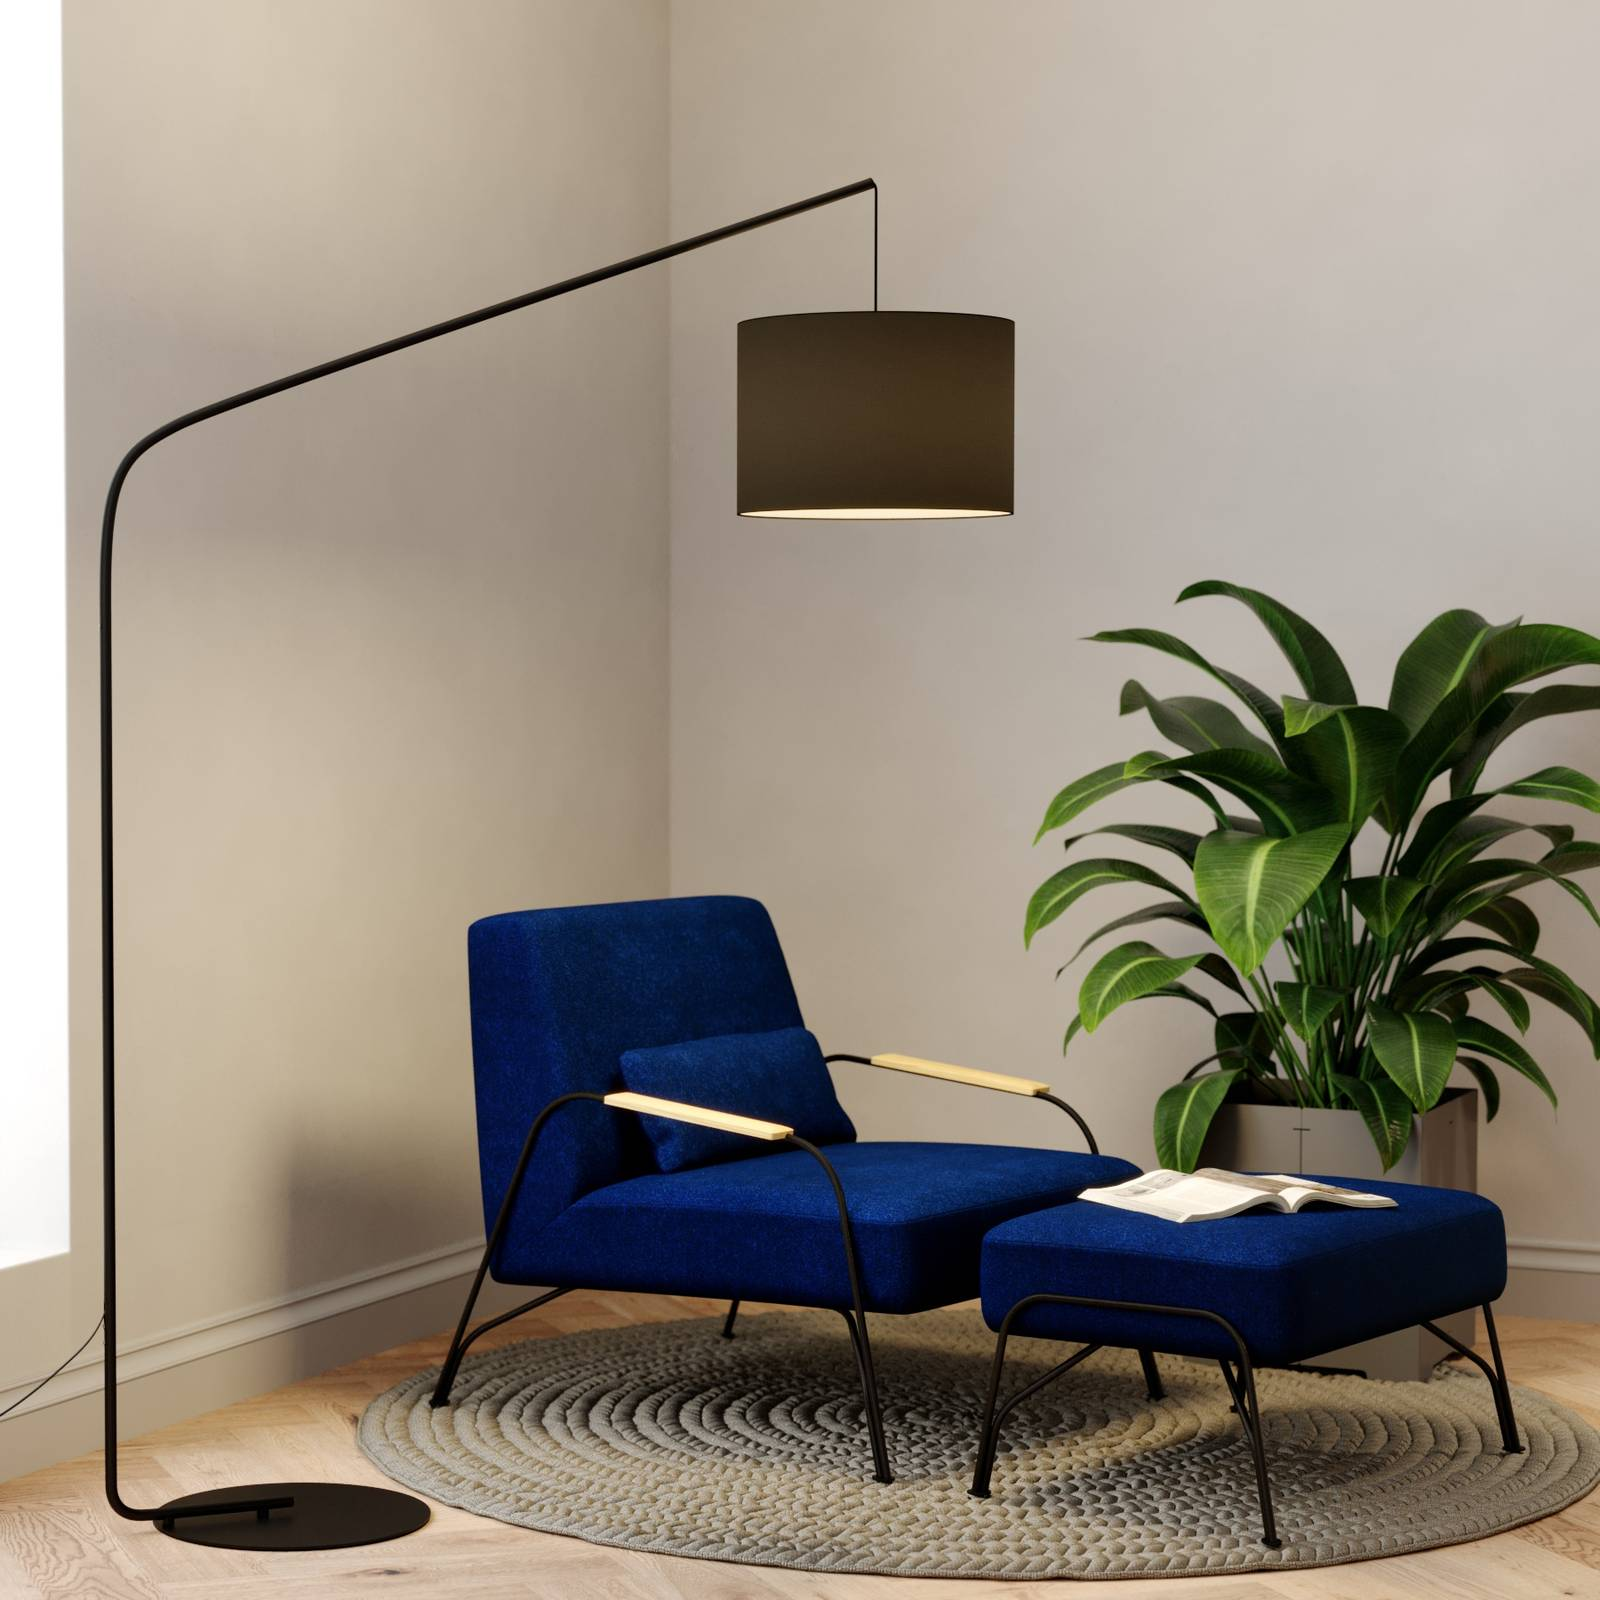 Viskan black floor arc lamp with fabric shade from Lindby